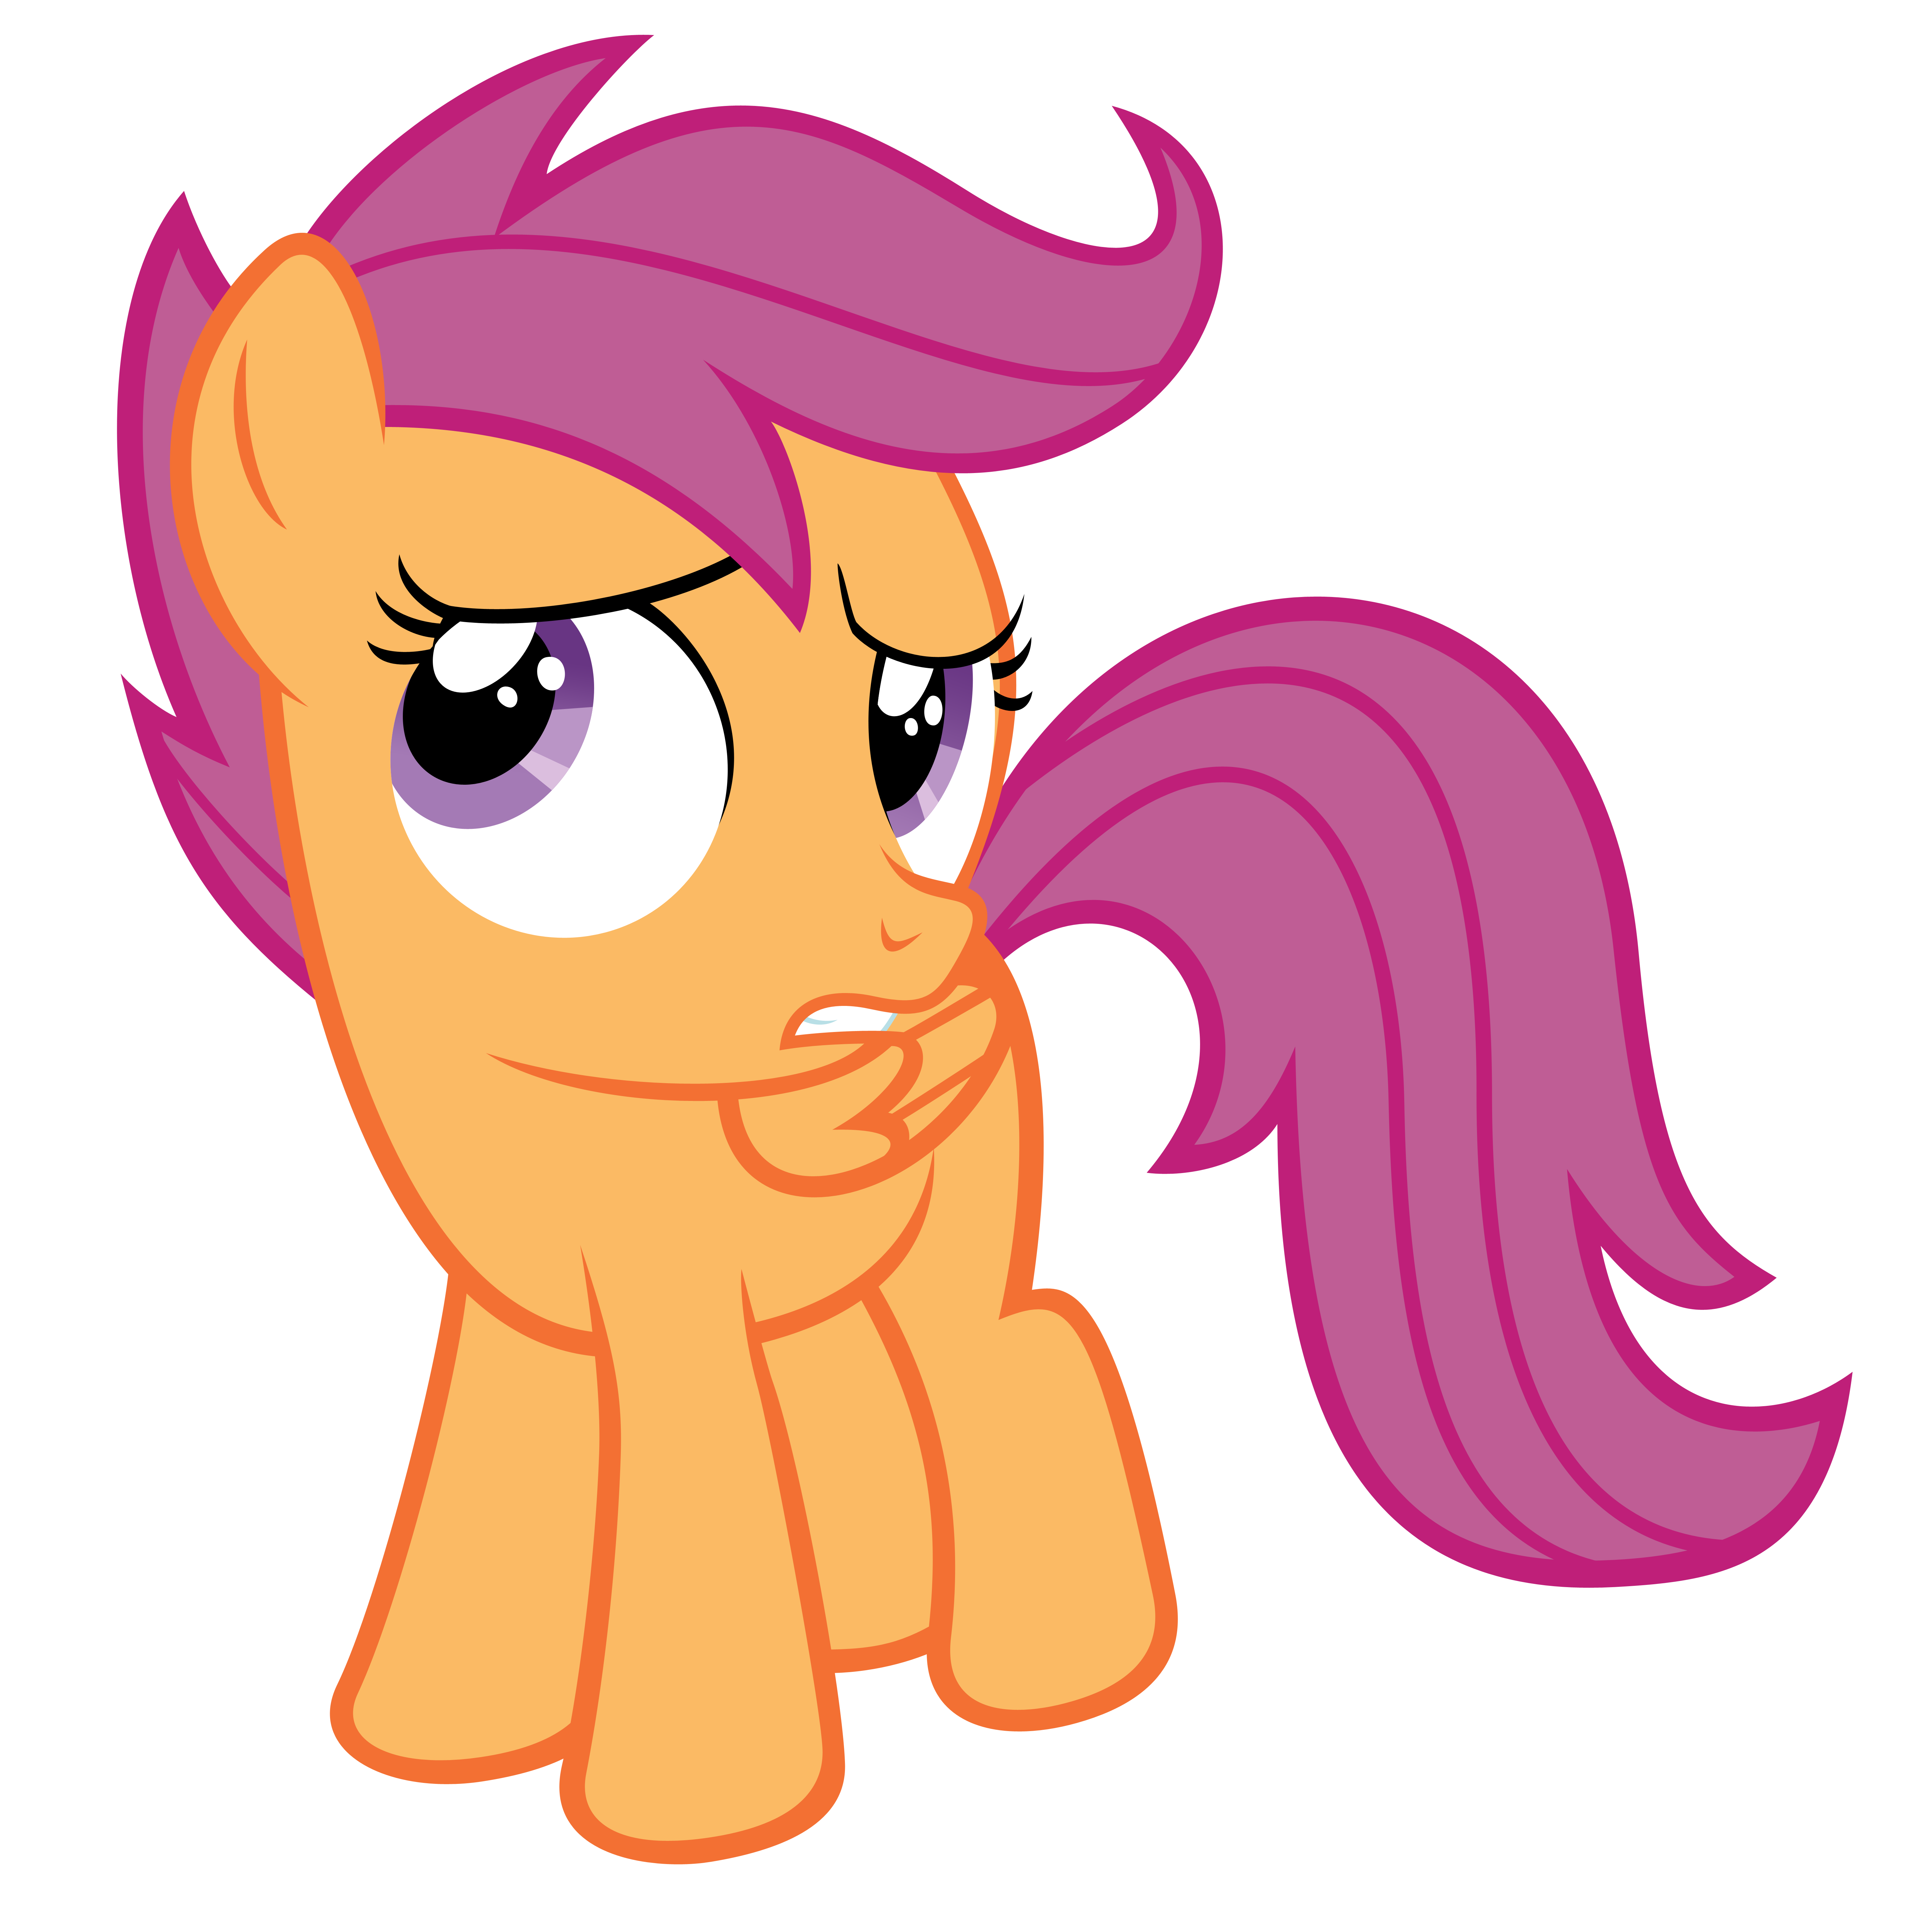 Scootaloo Doubtful By Otfor2 On Deviantart Scootaloo and her friends, apple bloom and sweetie belle form the cutie mark crusaders, aclub/secret society devoted to helping ponies earn. deviantart